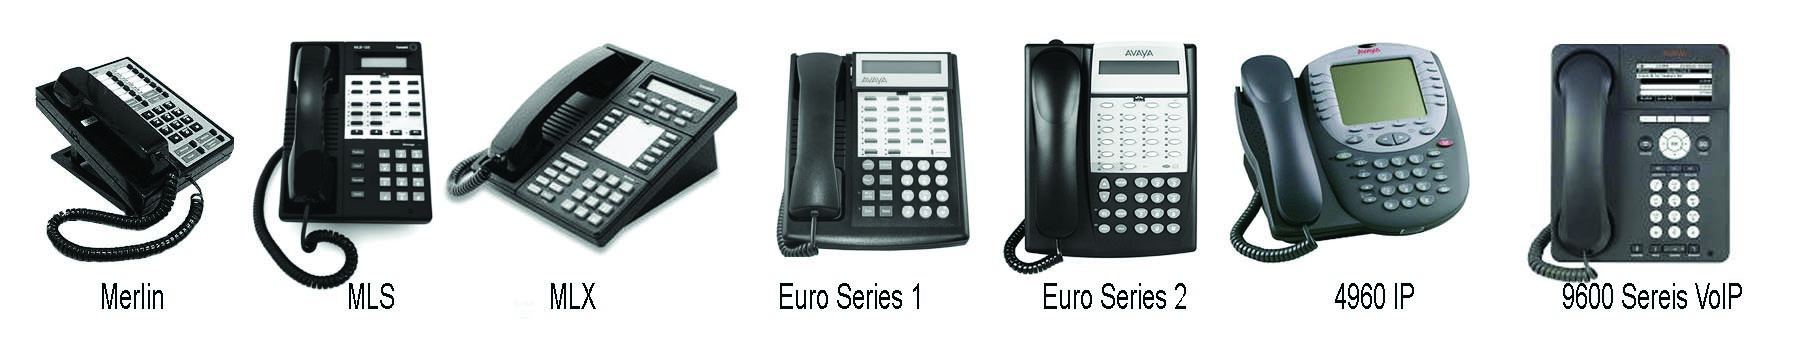 Which of these Avaya series phones look like the one on your desk?